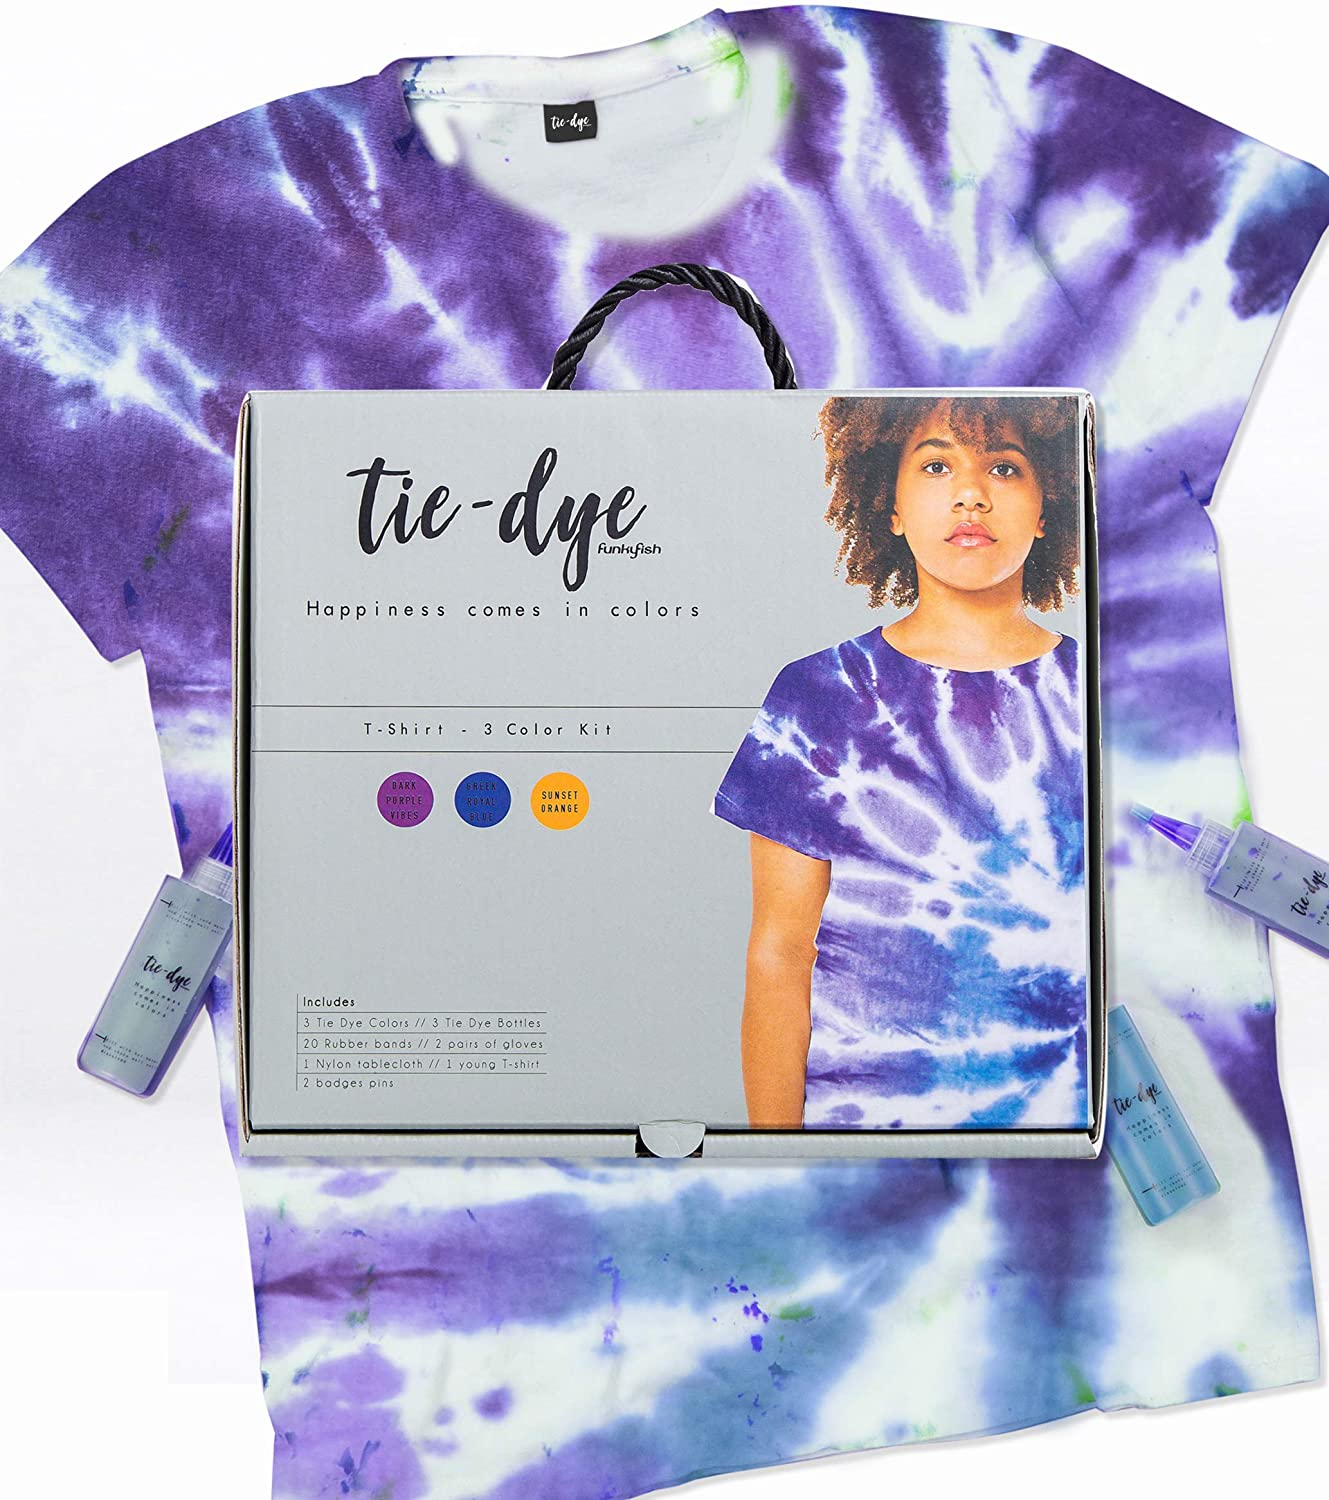 Tie Dye T-Shirt Kit For Kids, Fabric Dye For Clothing With All Supplies Included. Perfect Tie Dye Kit With Shirt, Home Activities For Adults And Kids, Set With All Tie Dye Ink And Decorating Techniques And Inspiration. Safe And Easy To Use. Rainbow Creative Kit With T-Shirt